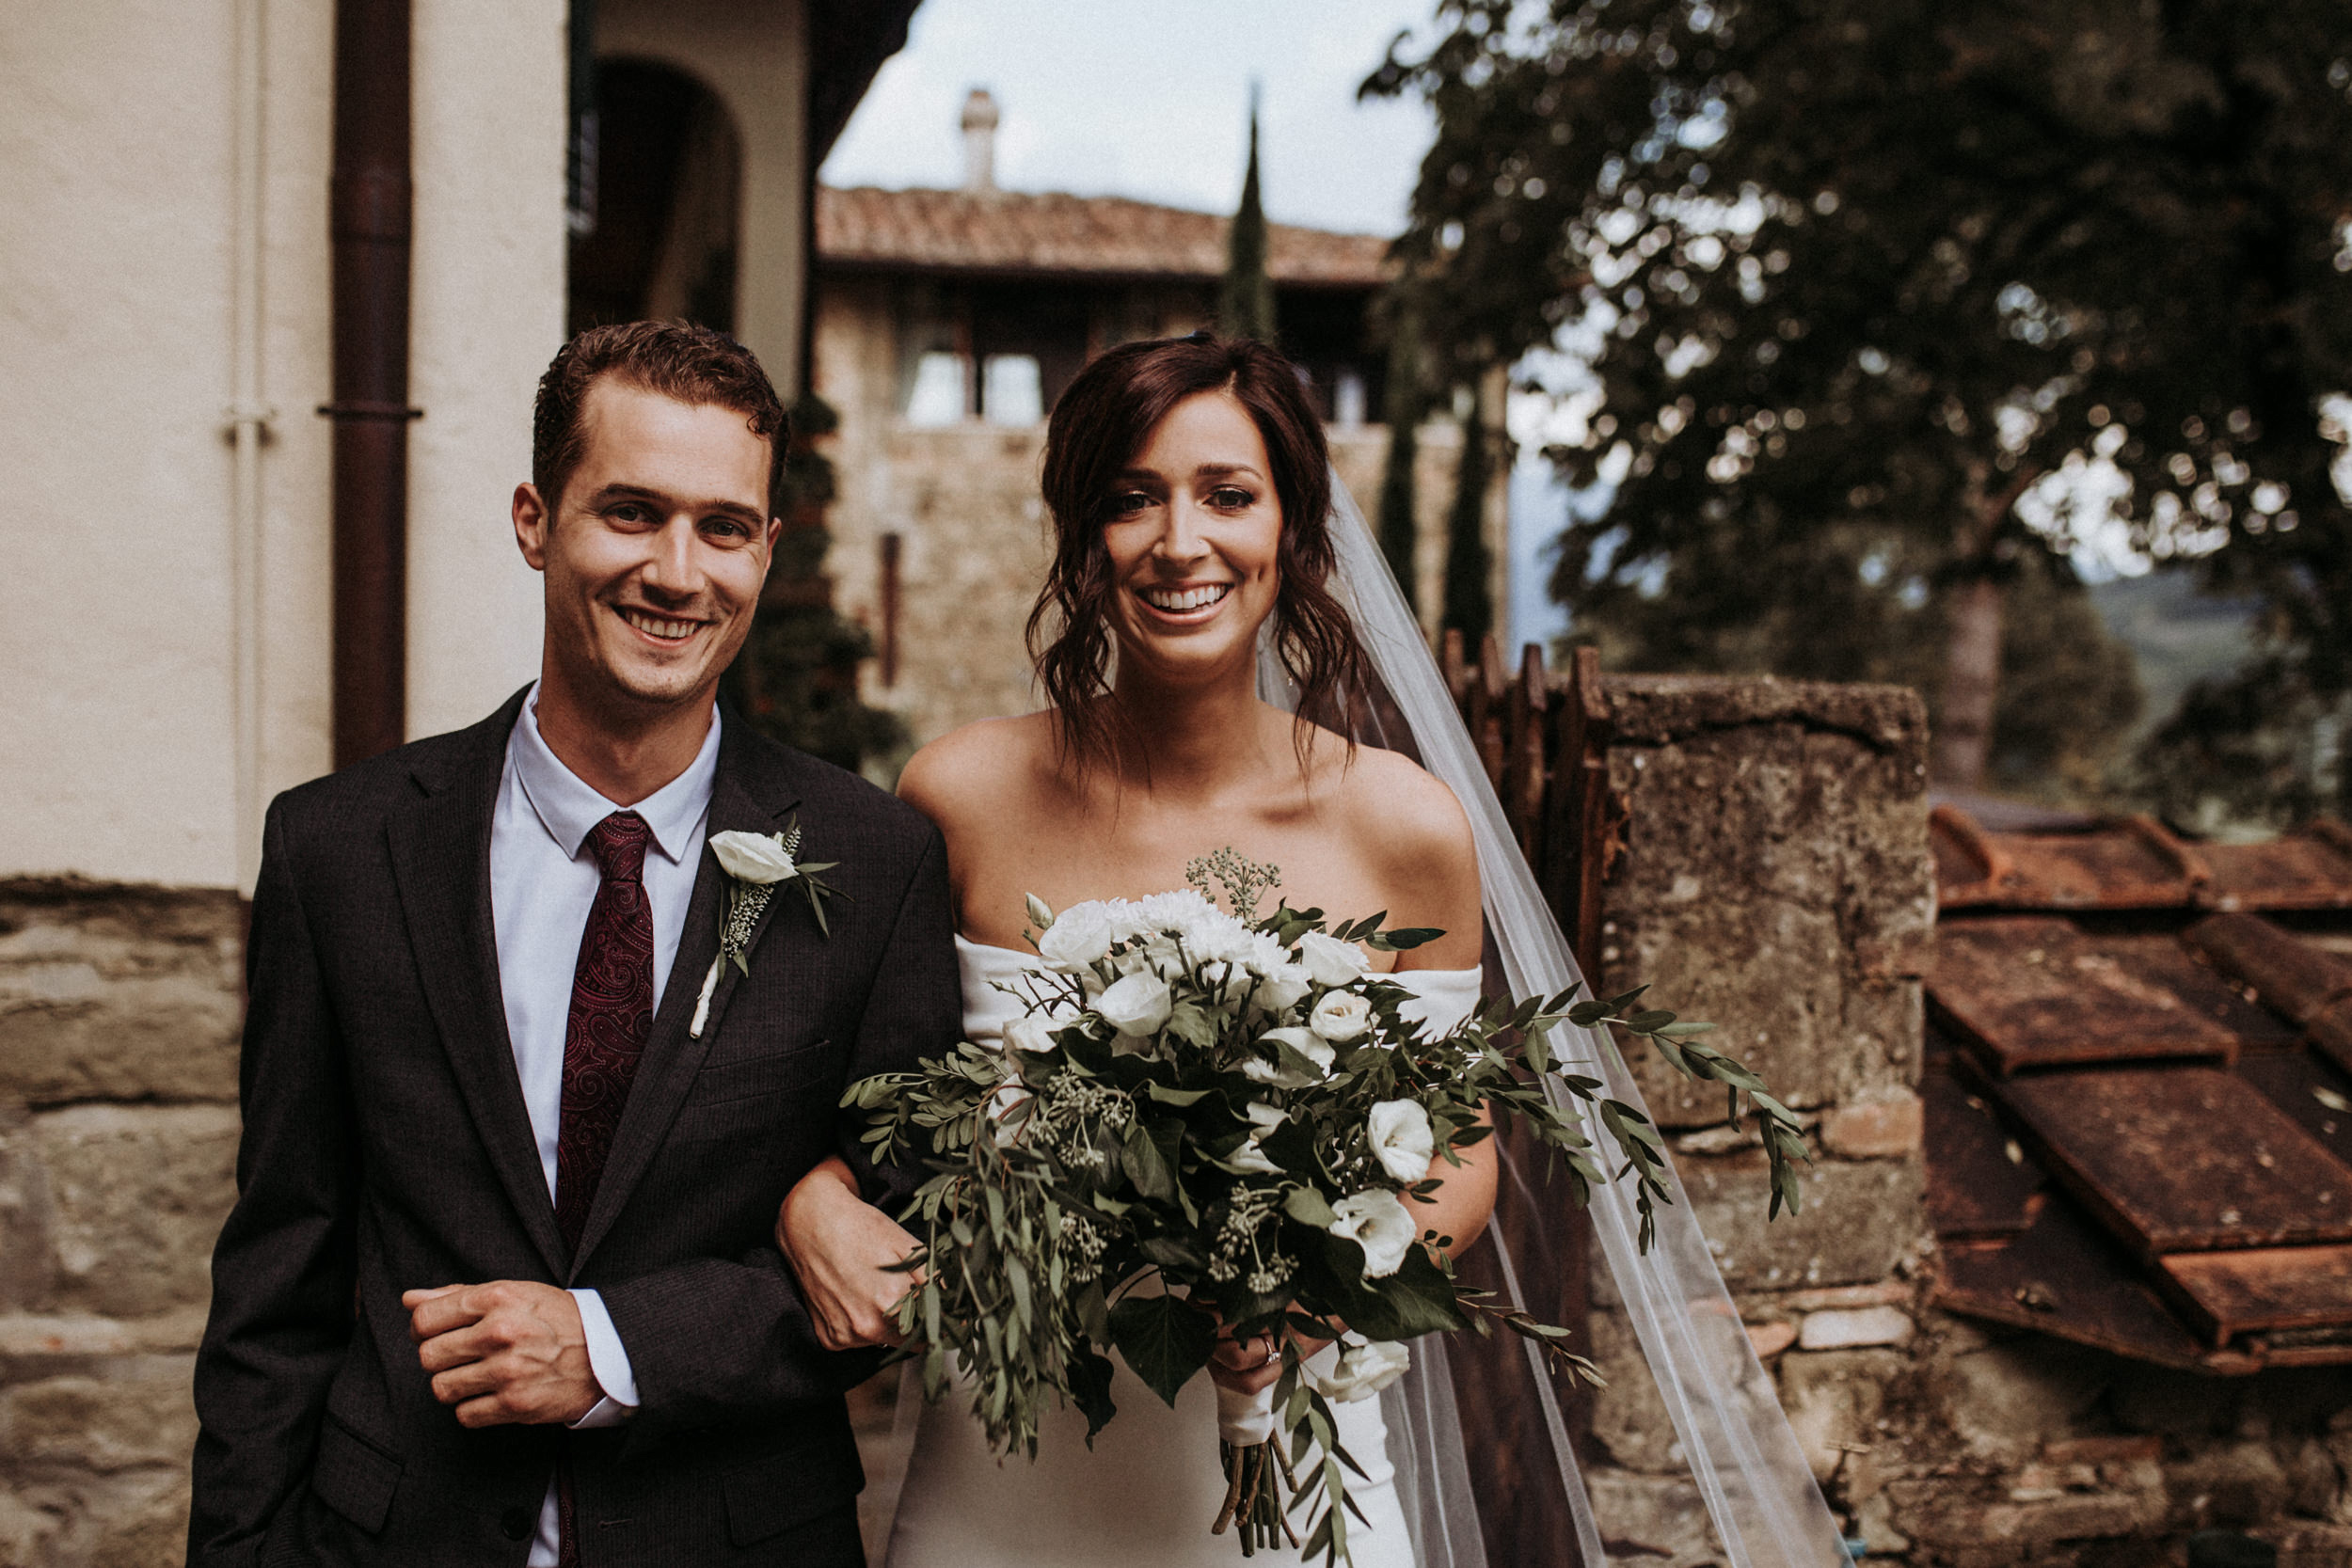 dm_photography_KW_Tuscanyweddingday_202